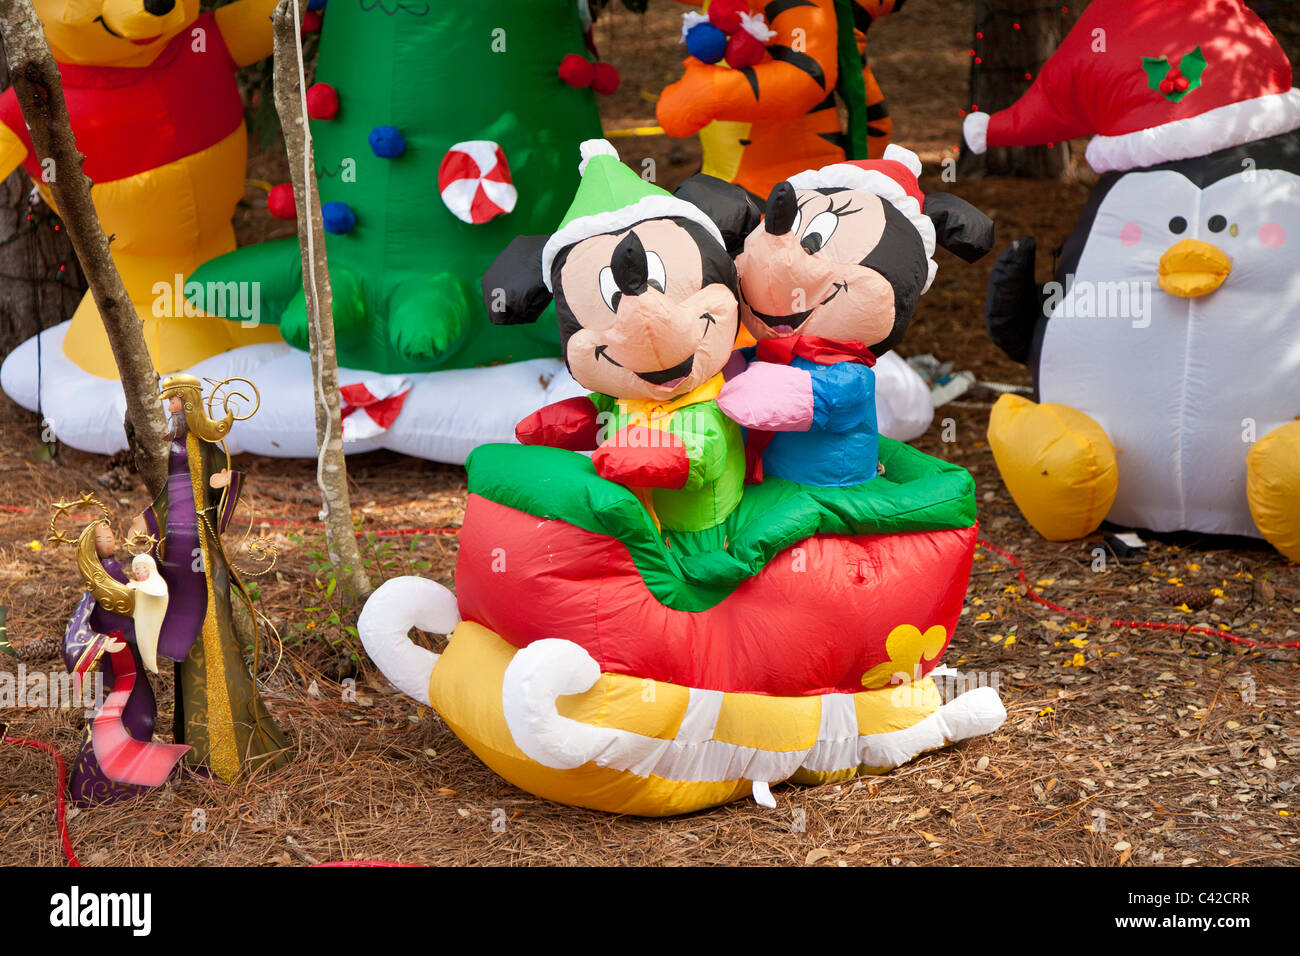 mickey and minnie mouse inflatable christmas holiday decorations in fort wilderness resort at walt disney world florida usa